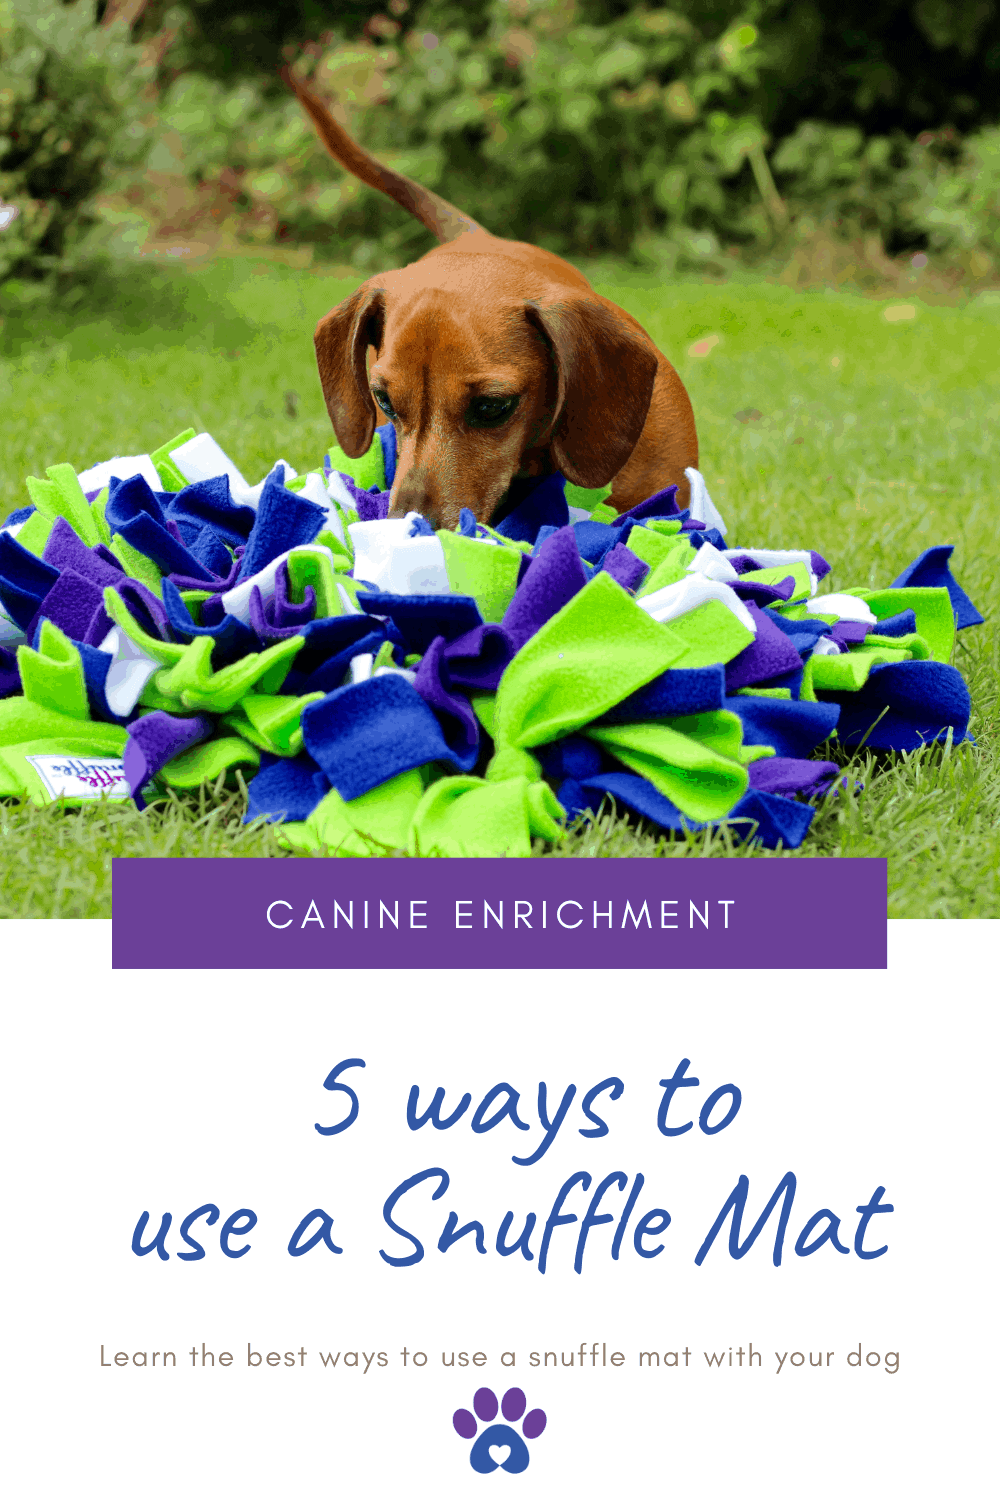 5 ways to use a snuffle mat